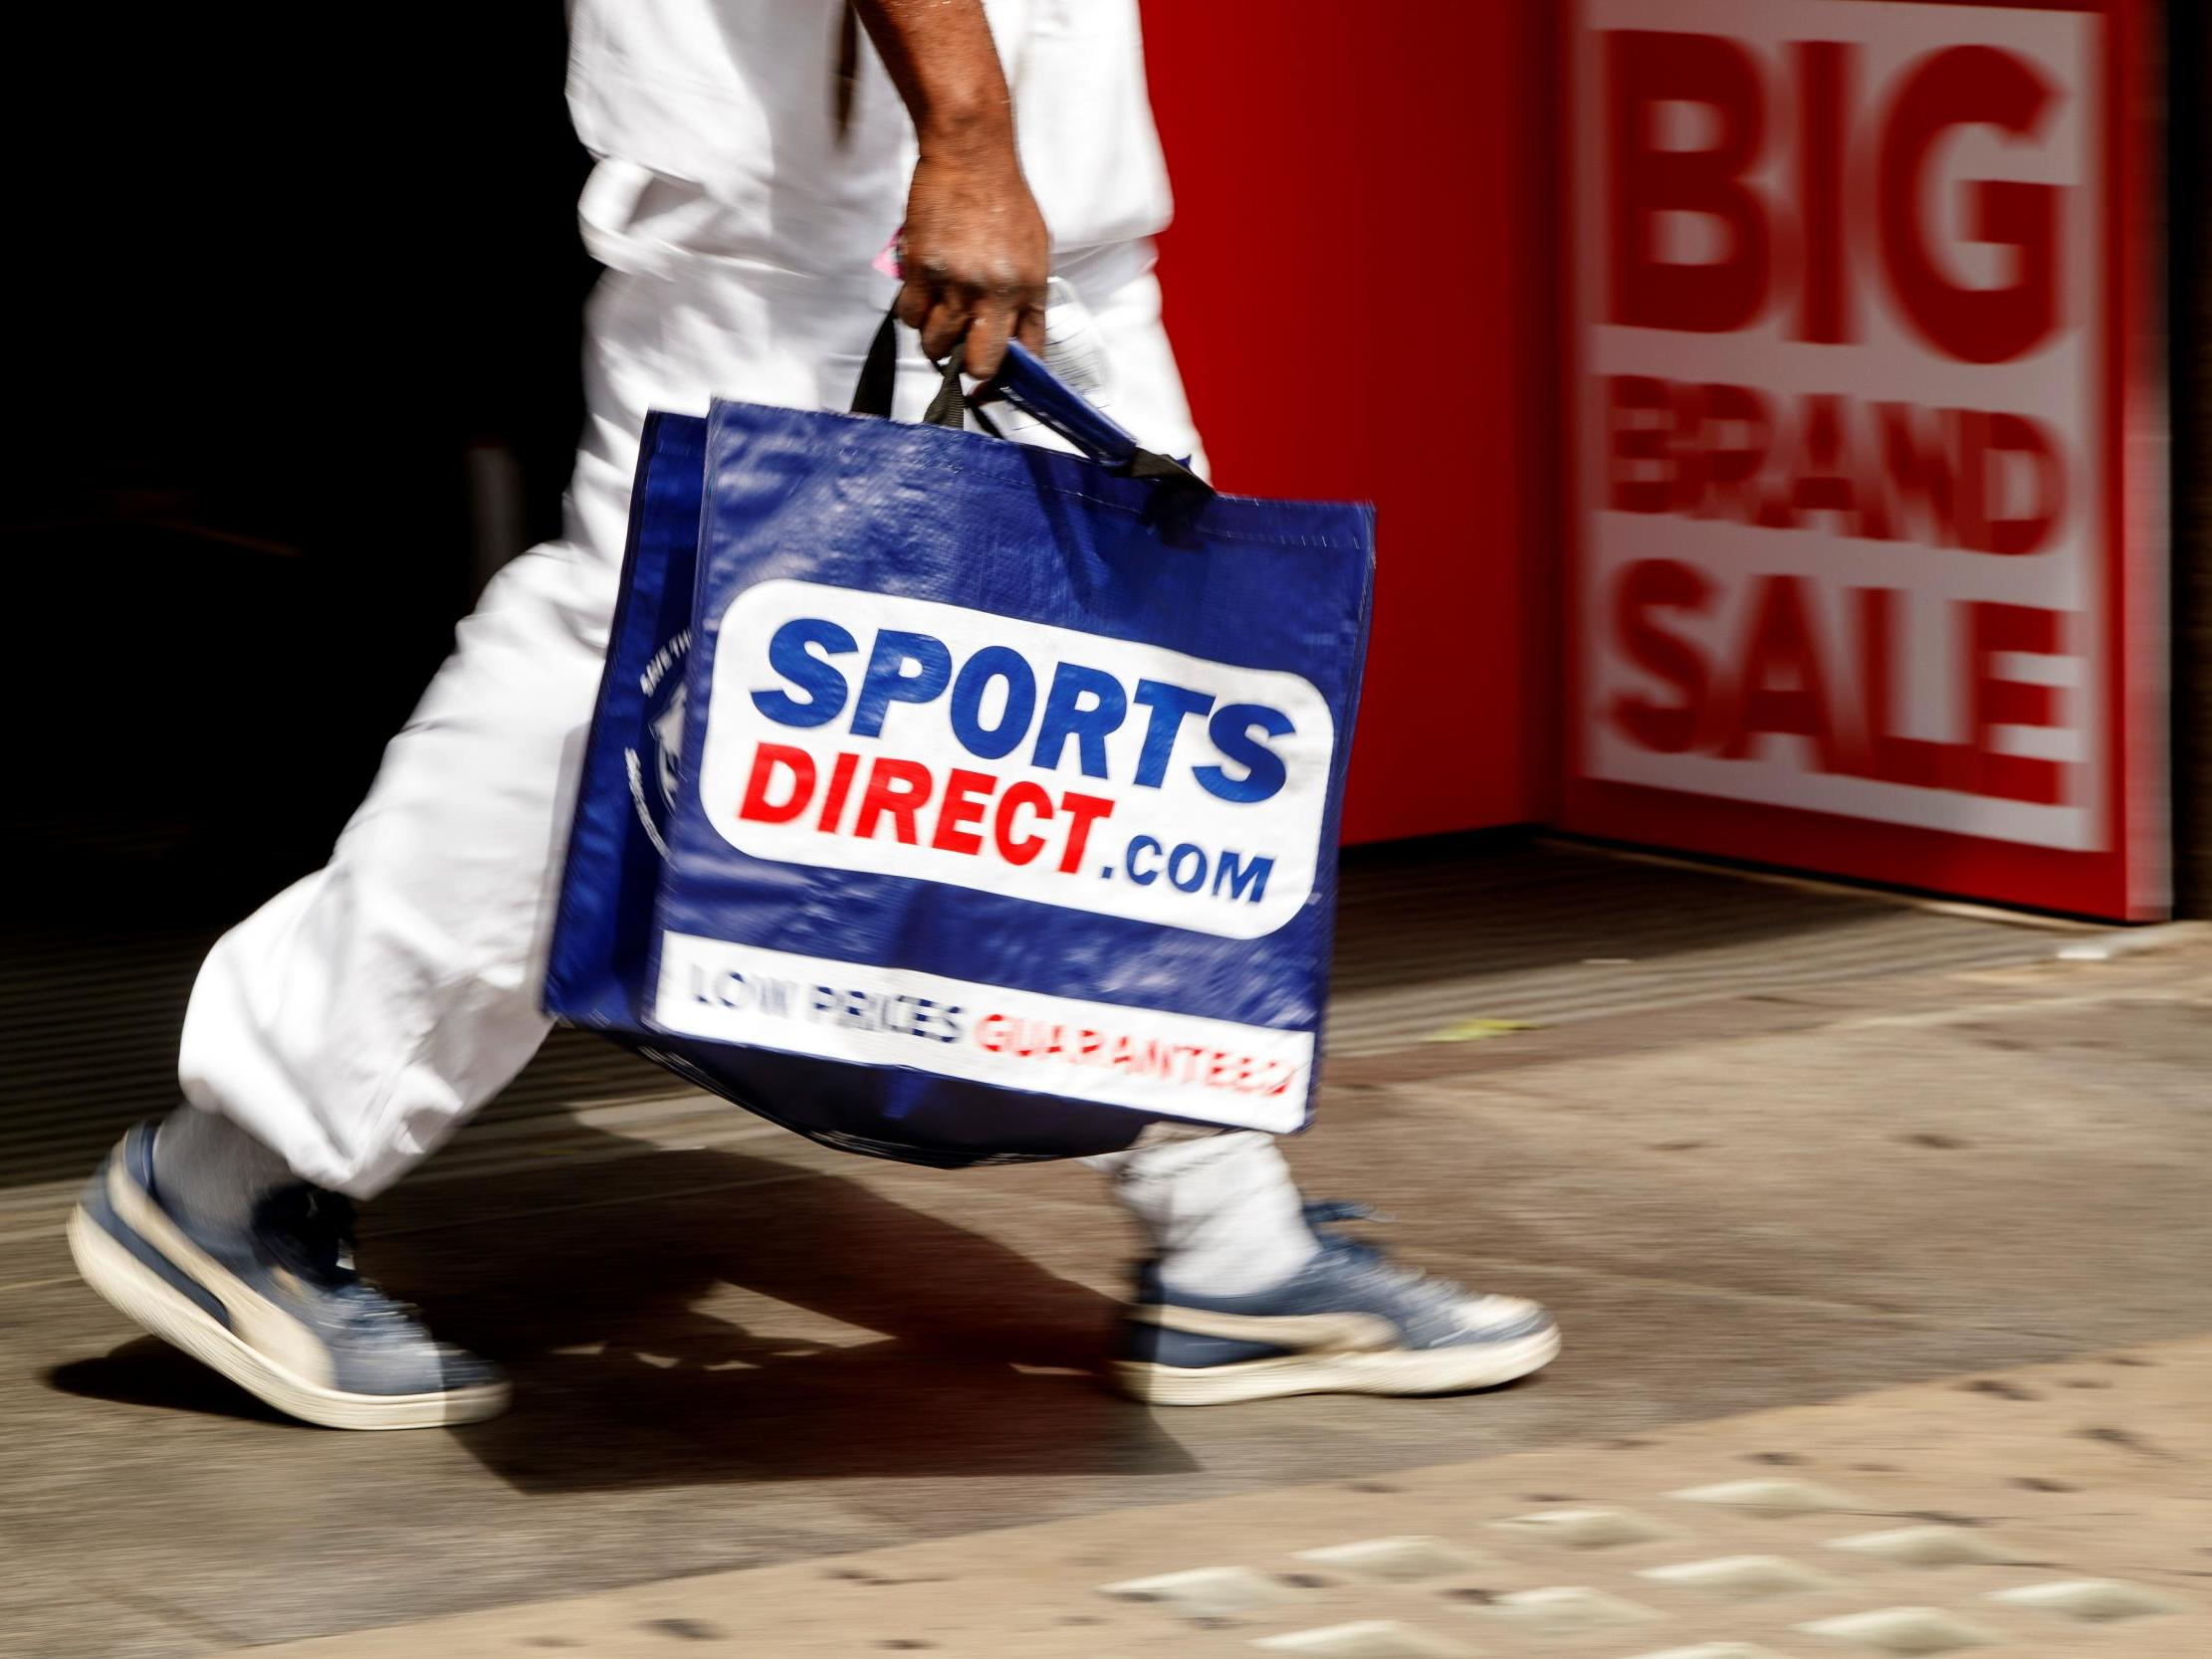 Coronavirus: Sports Direct in U-turn after backlash at plans to stay open during lockdown